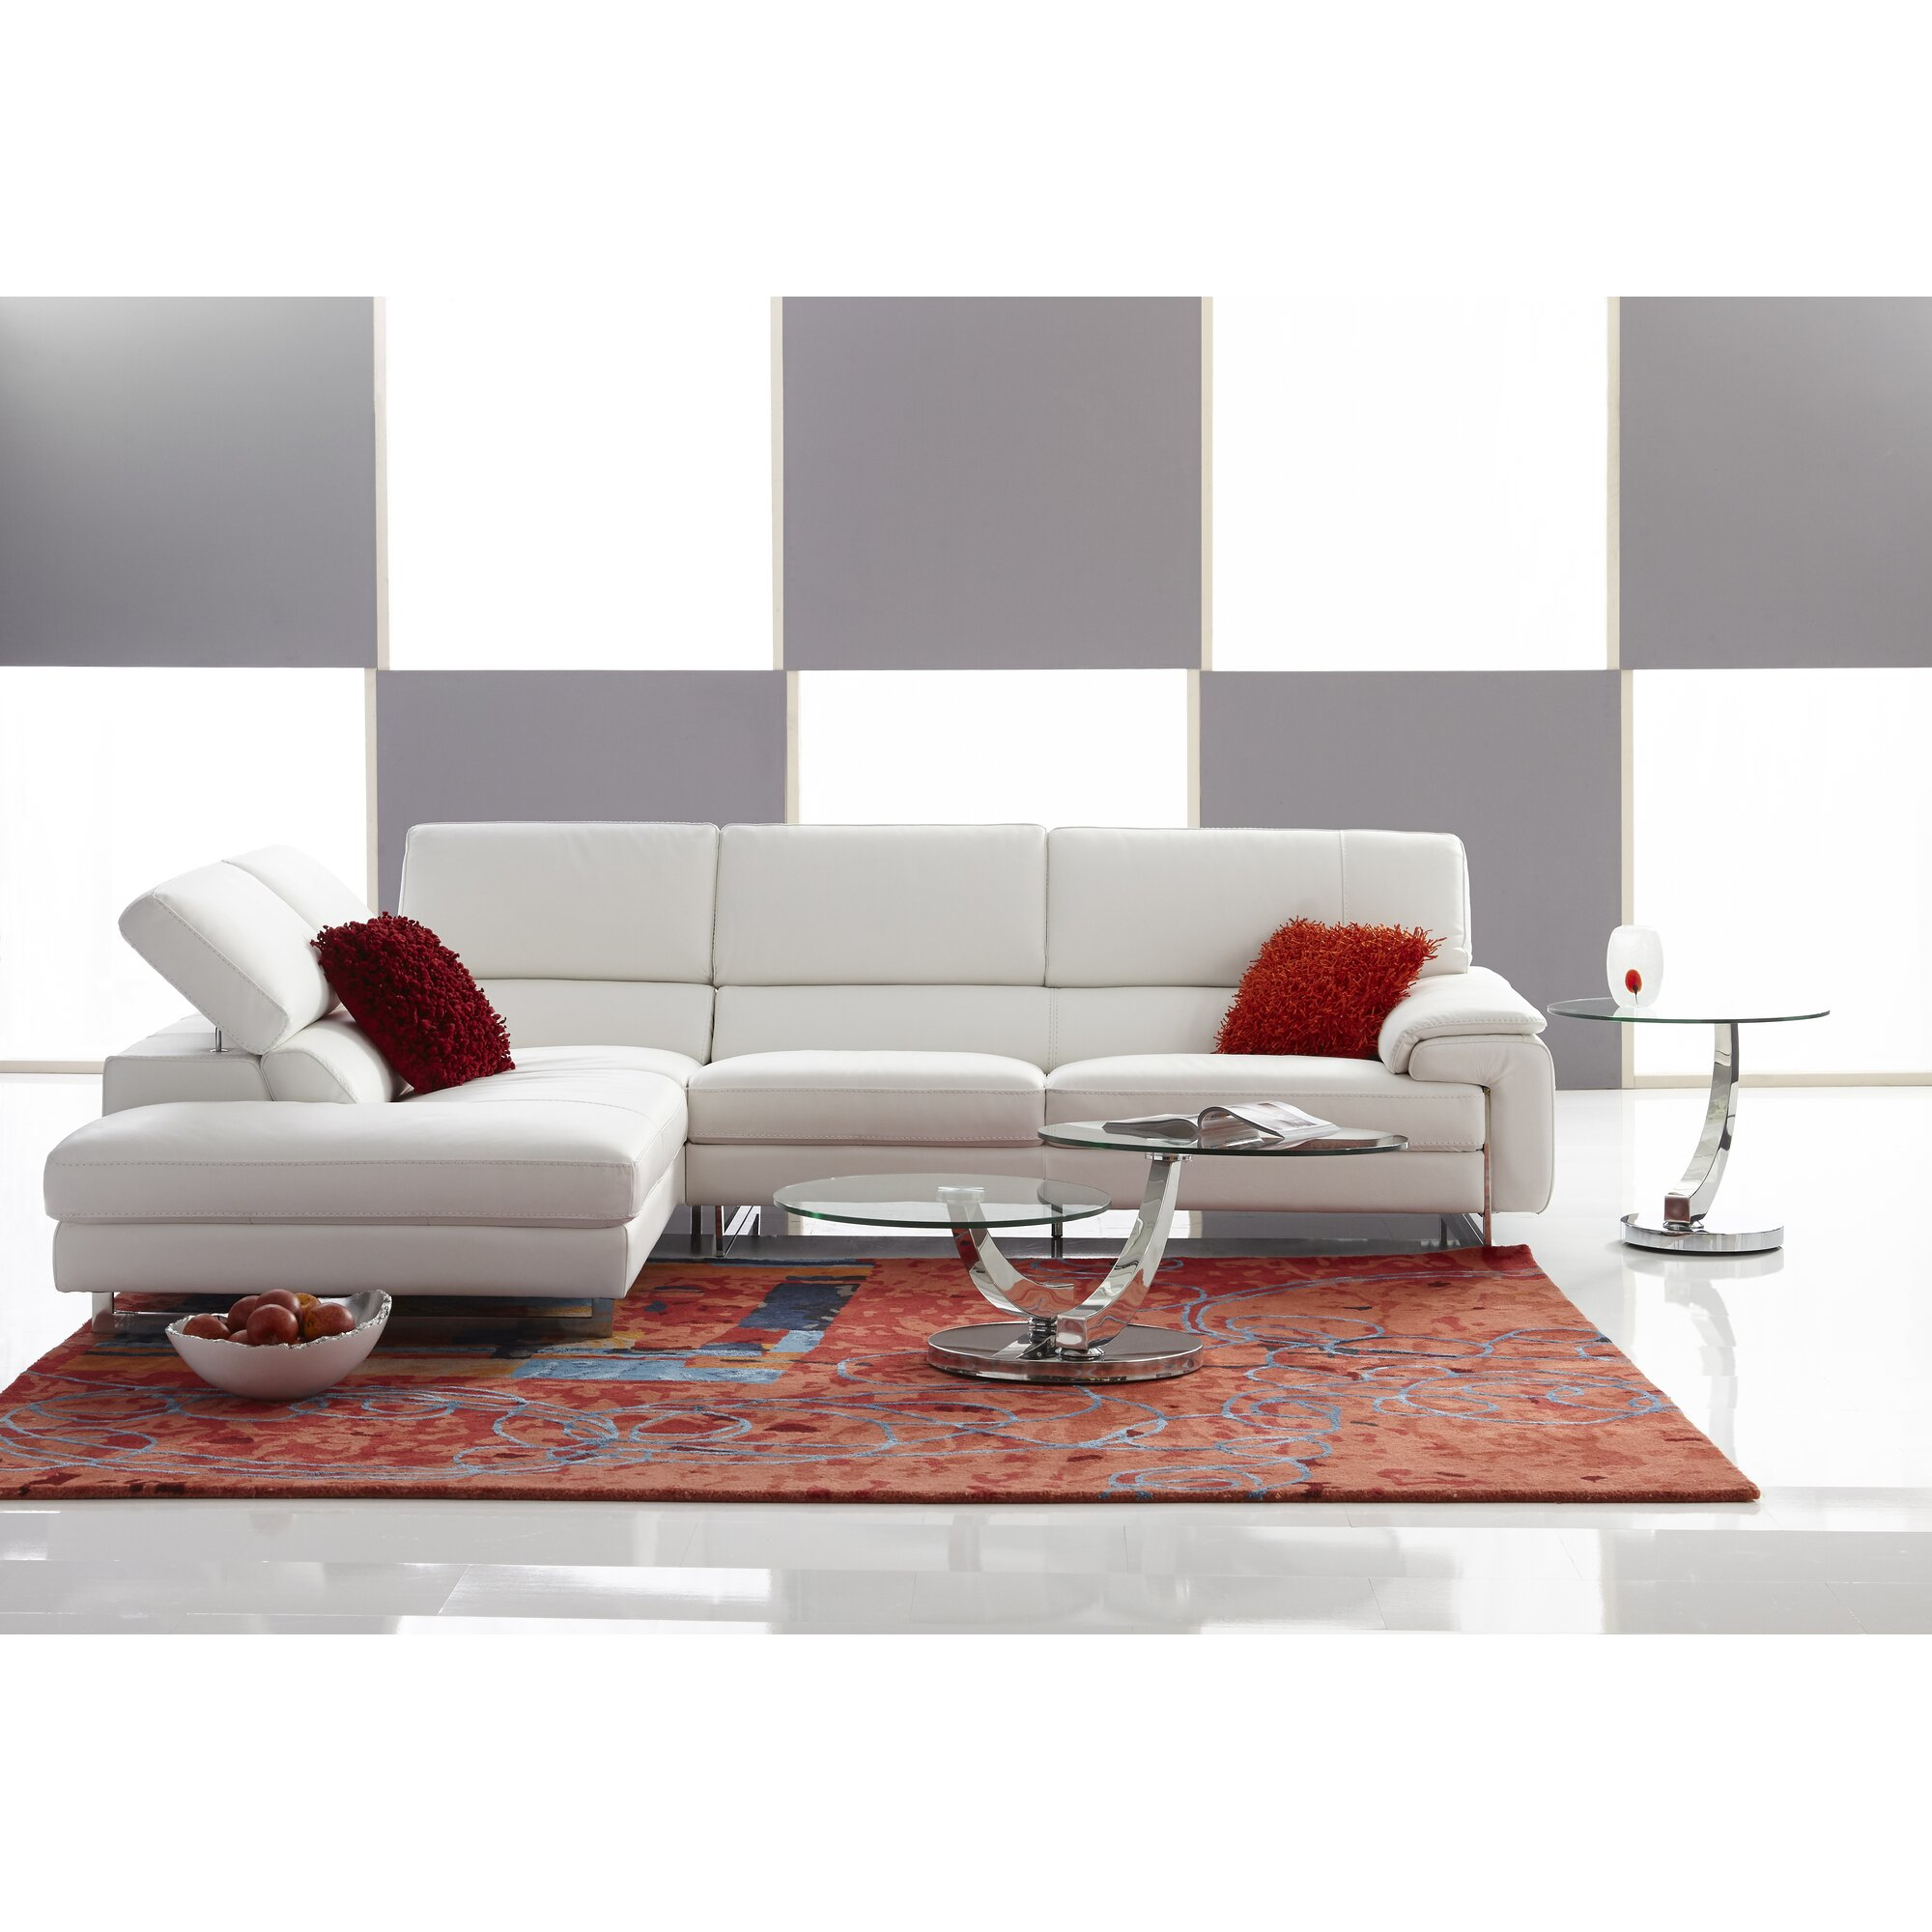 Bellini modern living allure coffee table reviews for Allure coffee table